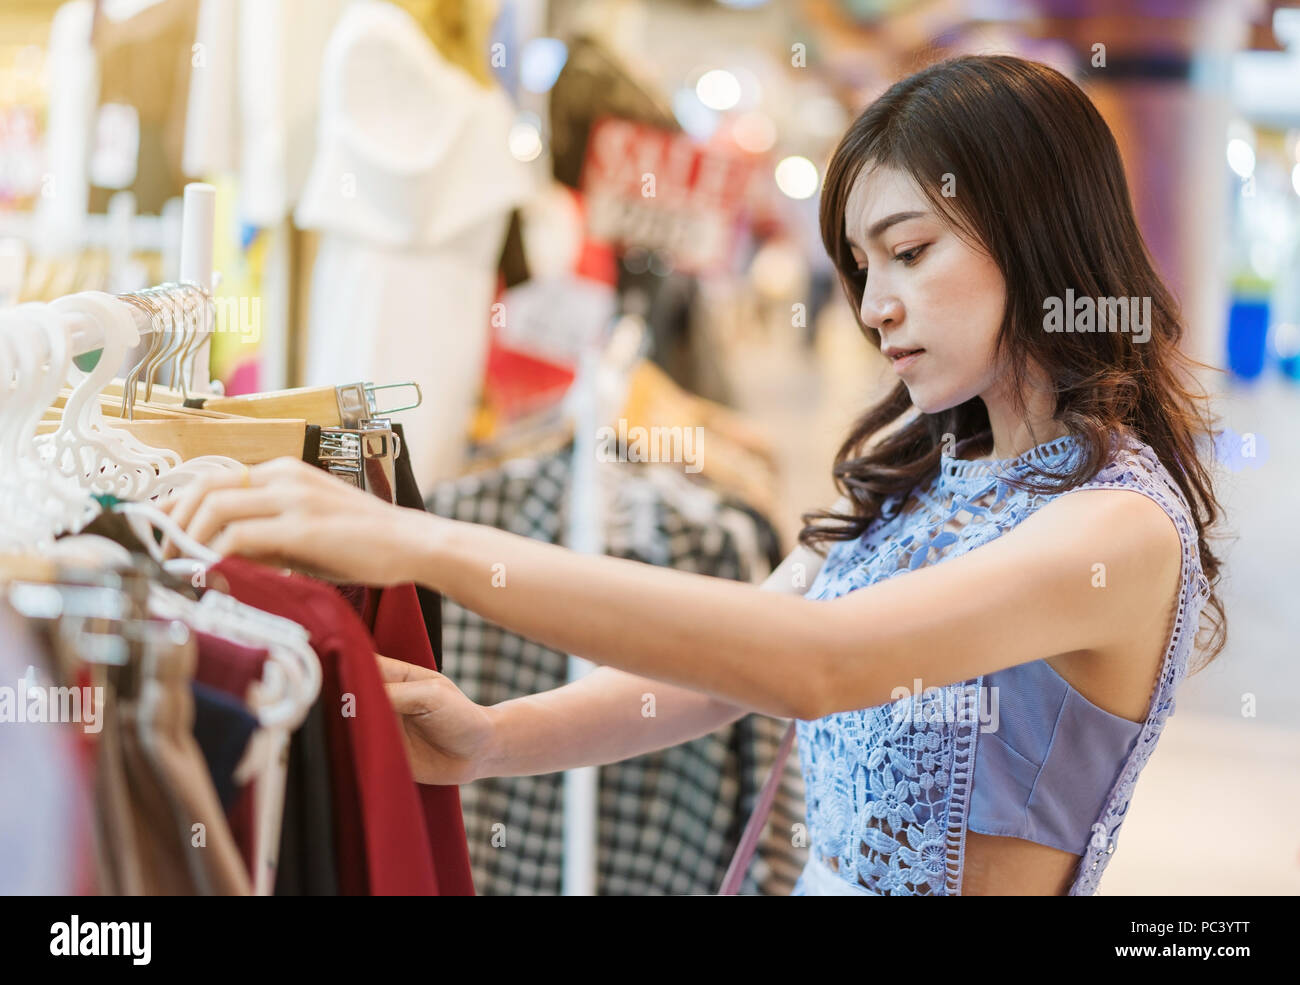 6d8bee0bbfc3f young woman shopping in a clothing store Stock Photo: 213988008 - Alamy